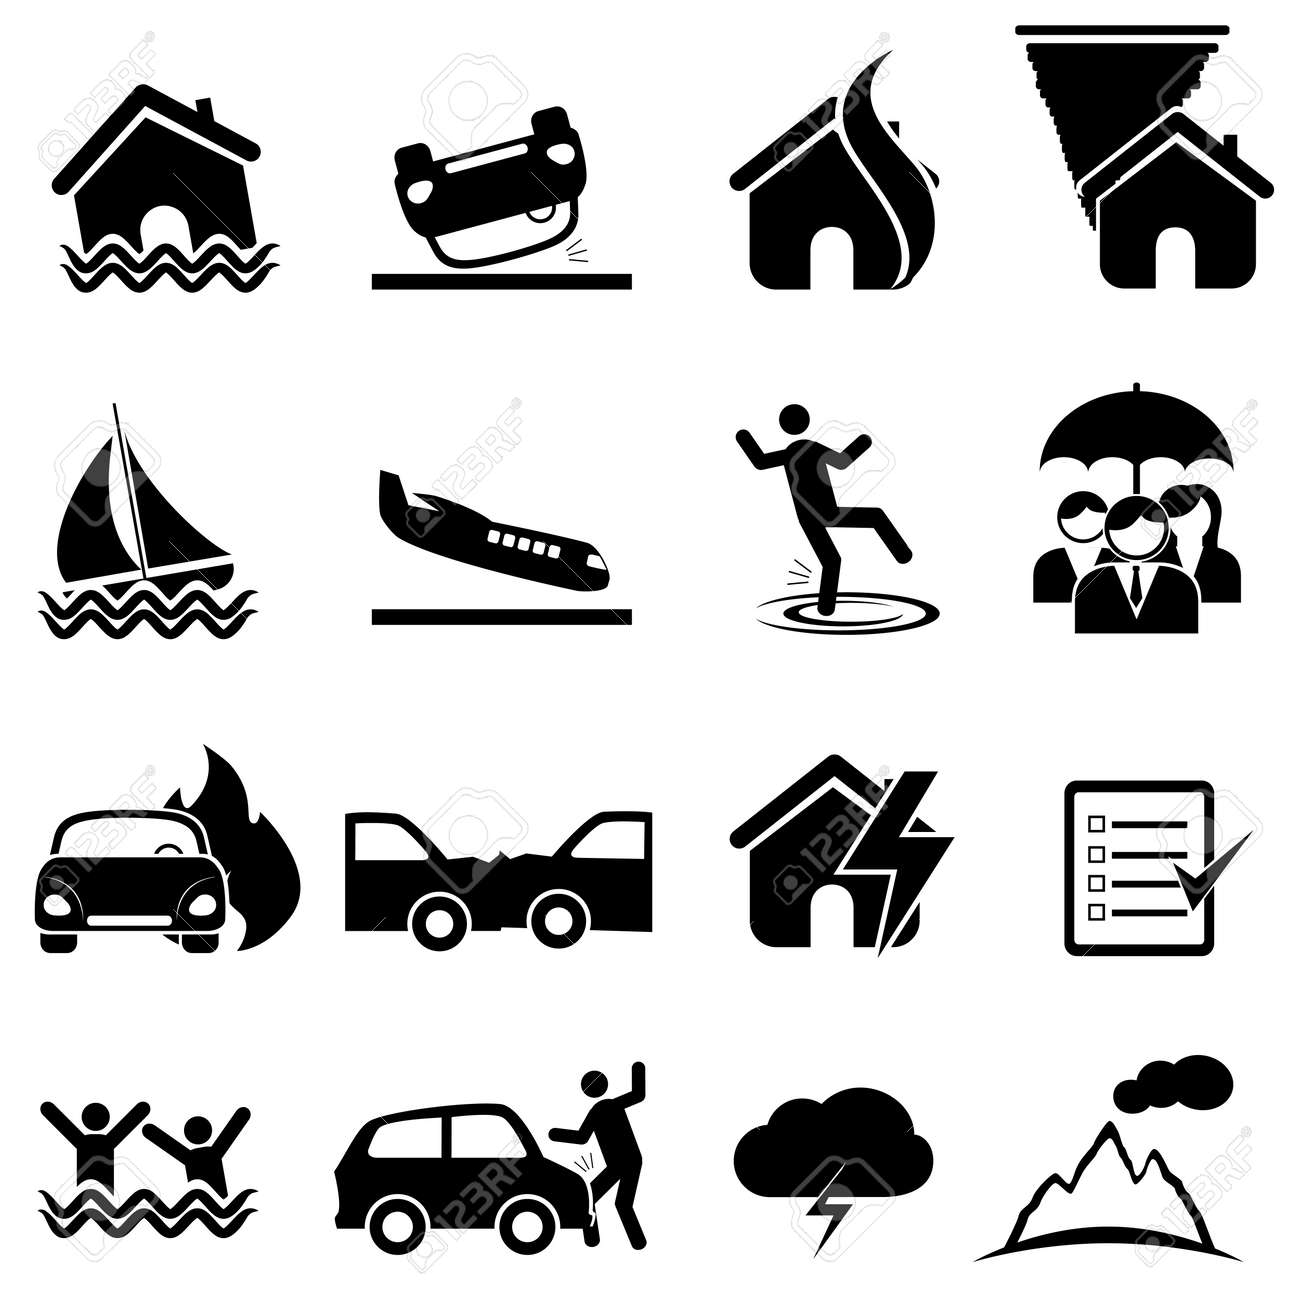 Insurance, accident, disaster icon set - 23019478